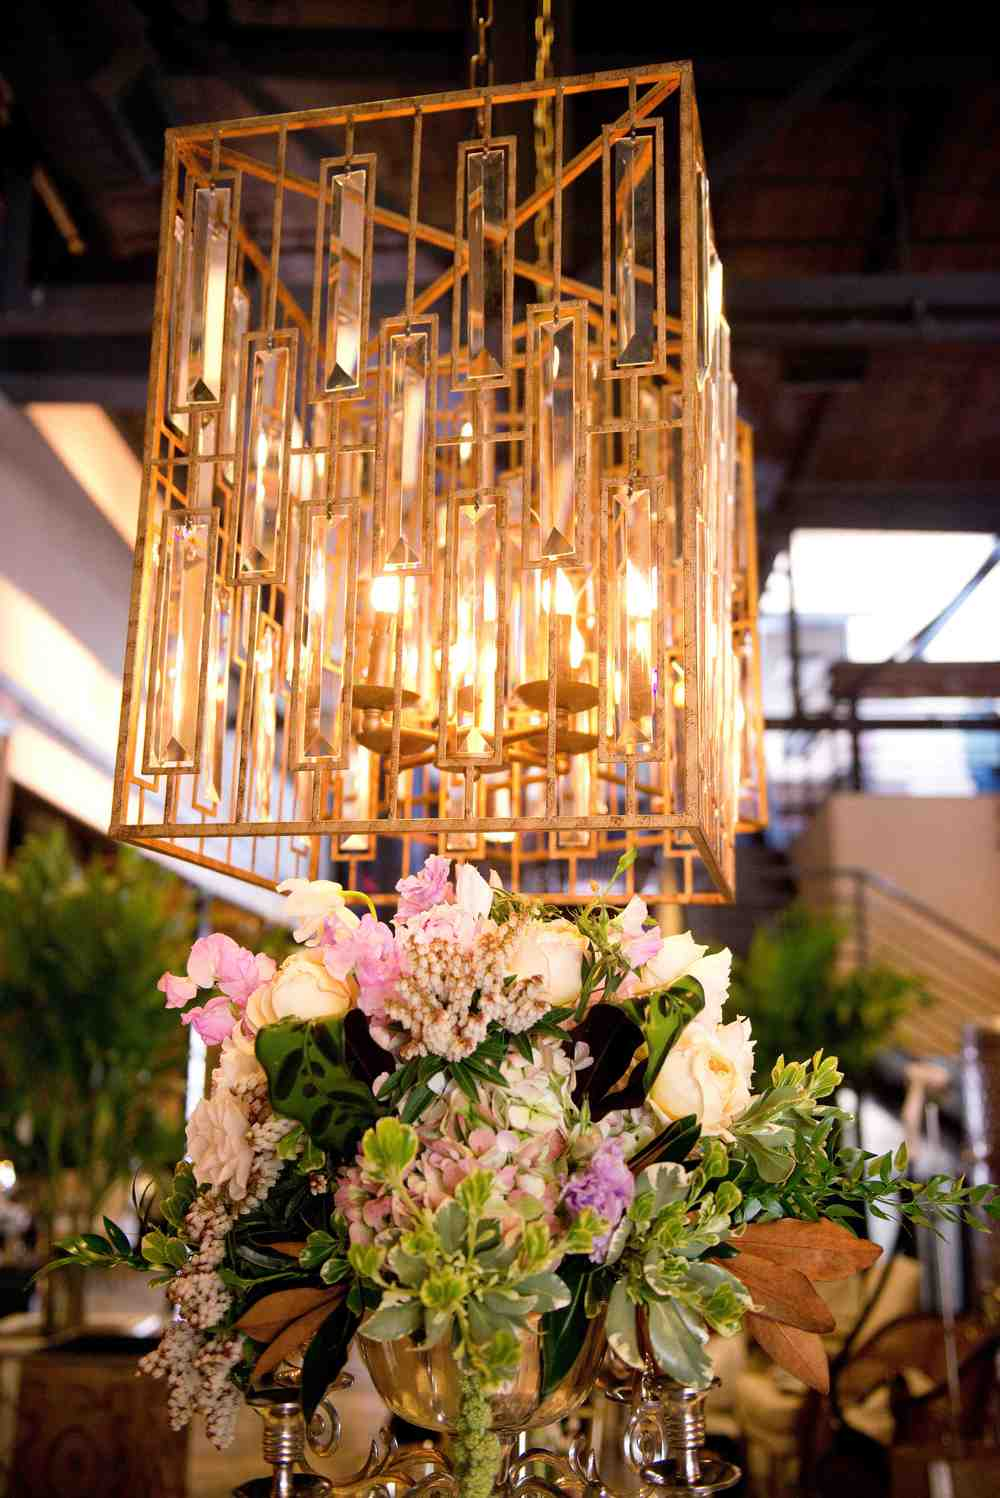 {Chandeliers were hung in the center of the distillery to anchor the dining table}